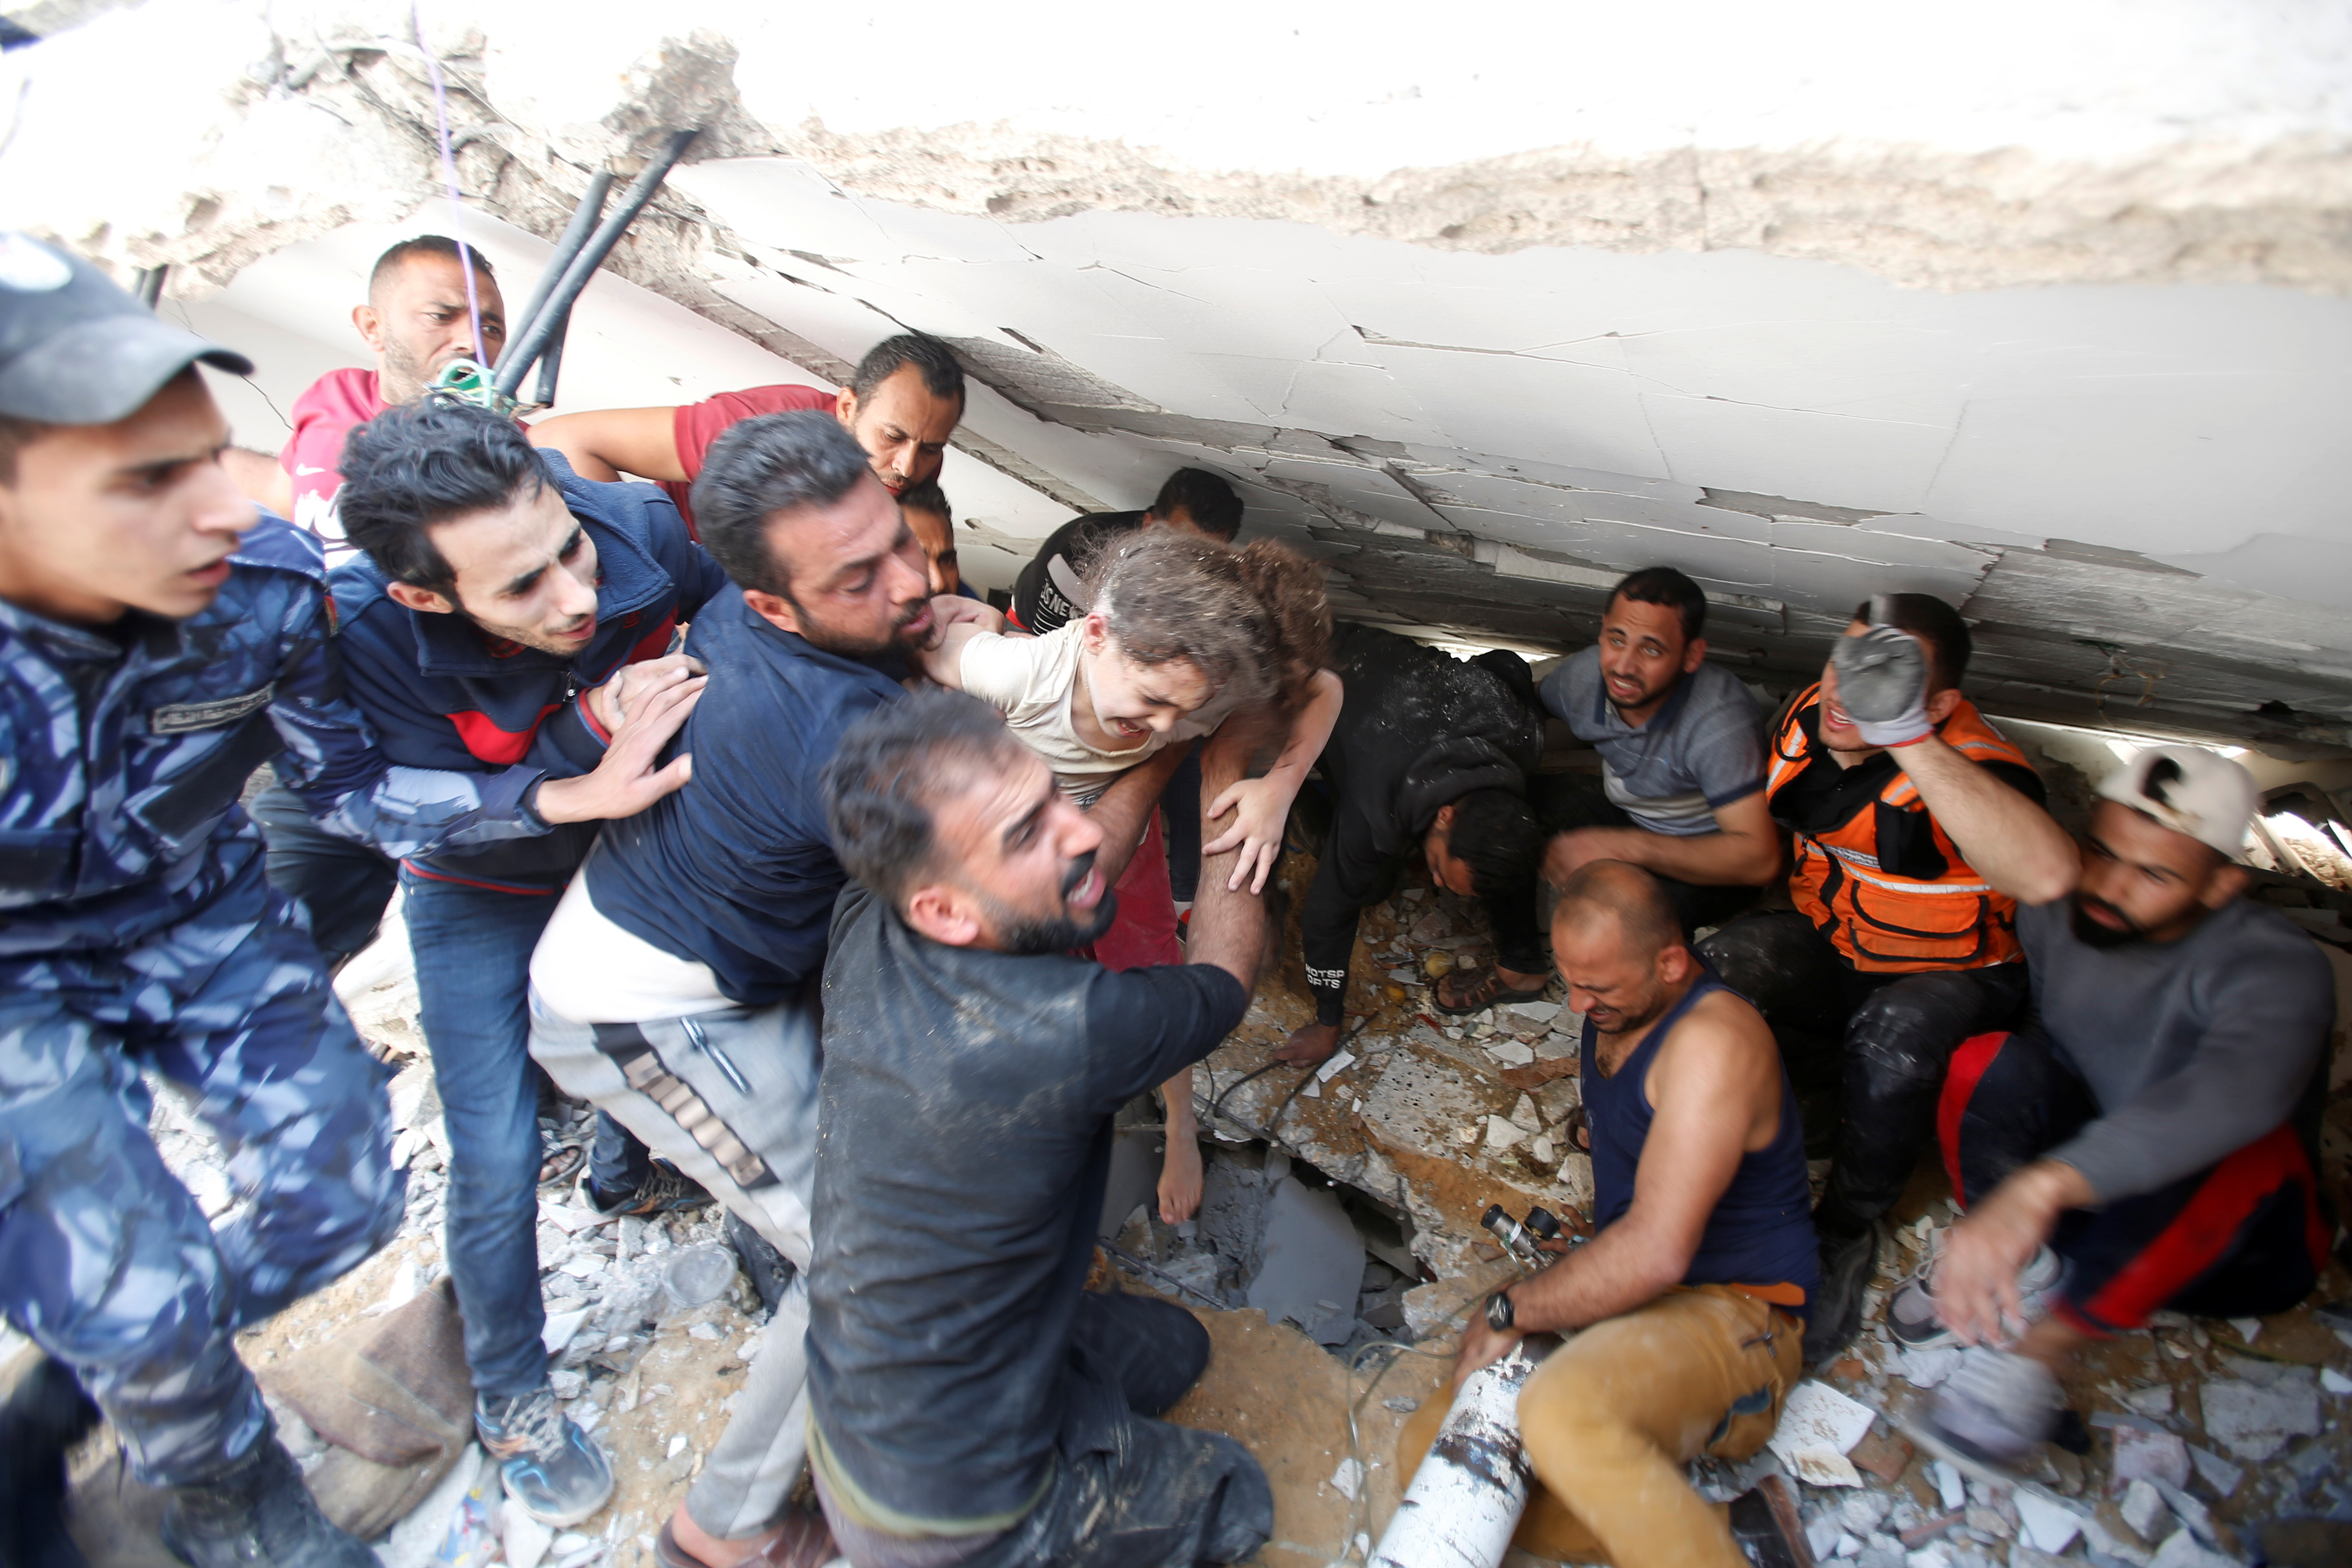 Rescuers carry Suzy Eshkuntana, 6, as they pull her from the rubble of a building at the site of Israeli air strikes, in Gaza City May 16, 2021. REUTERS/Mohammed Salem